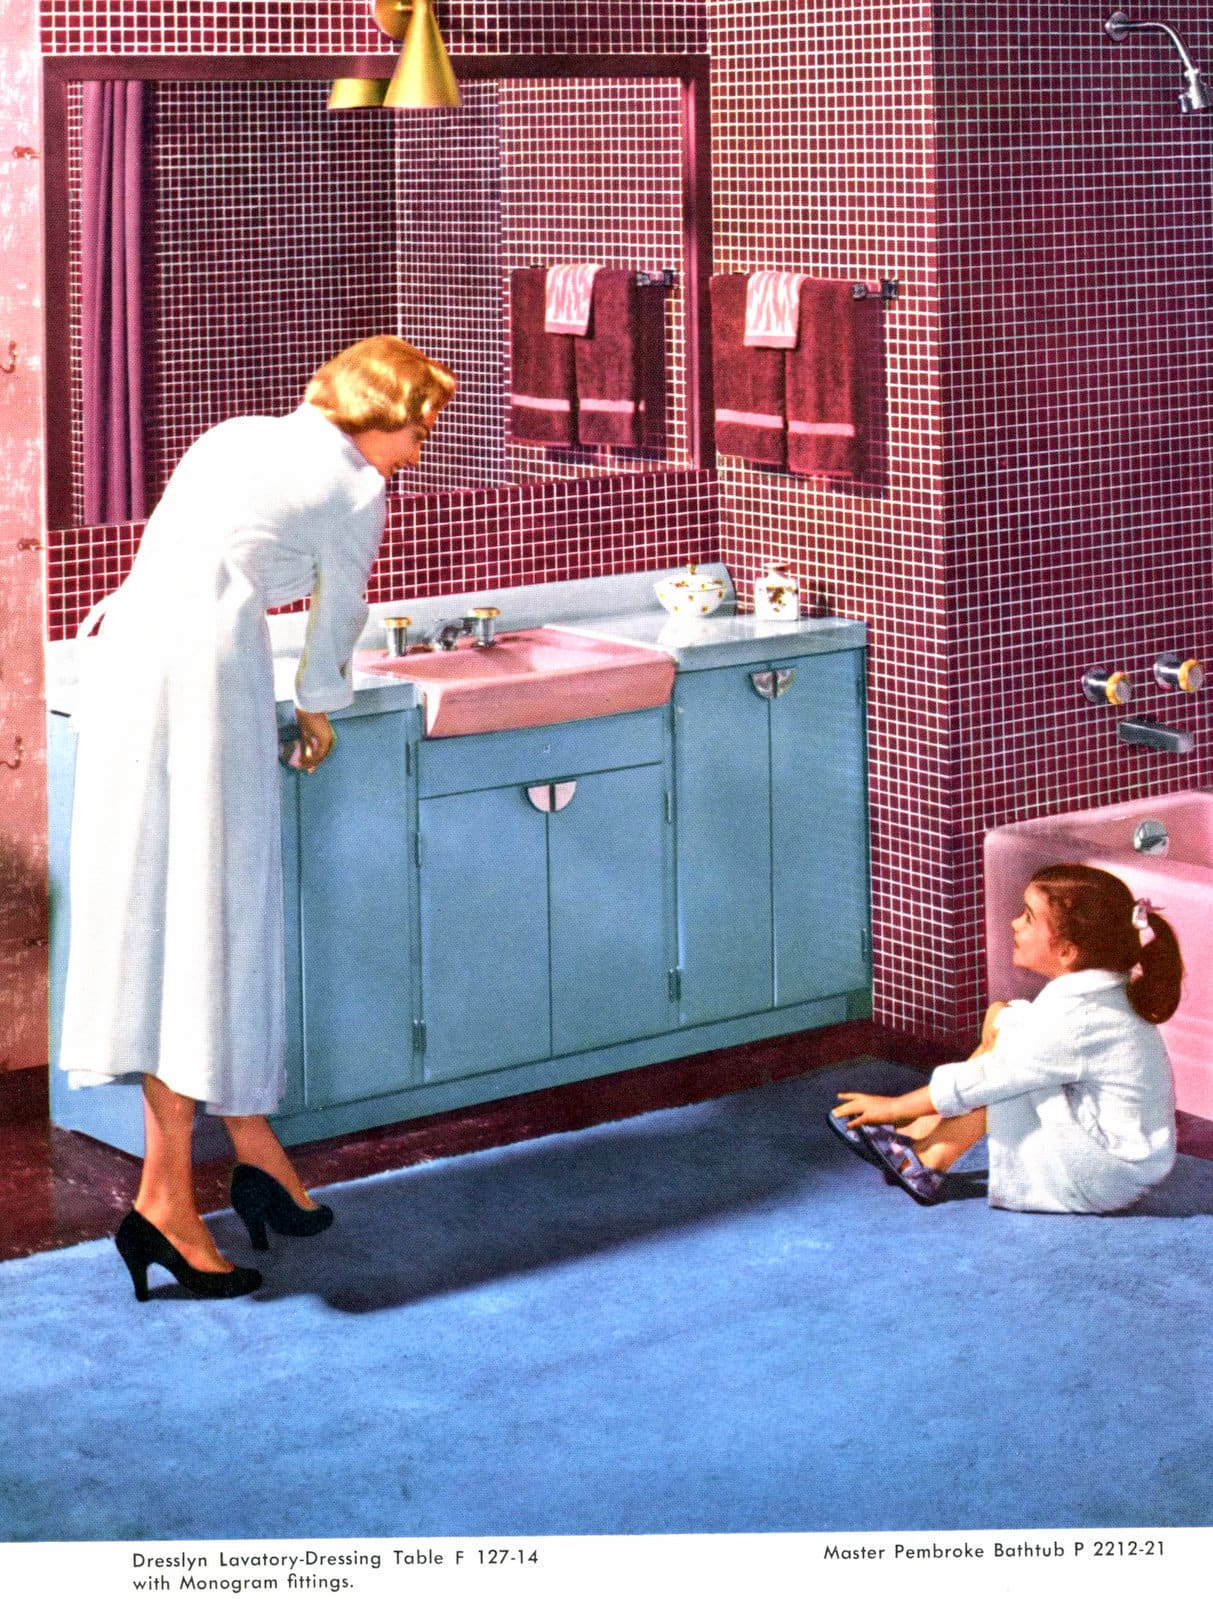 1950s bathroom decor and fixtures in red and blue